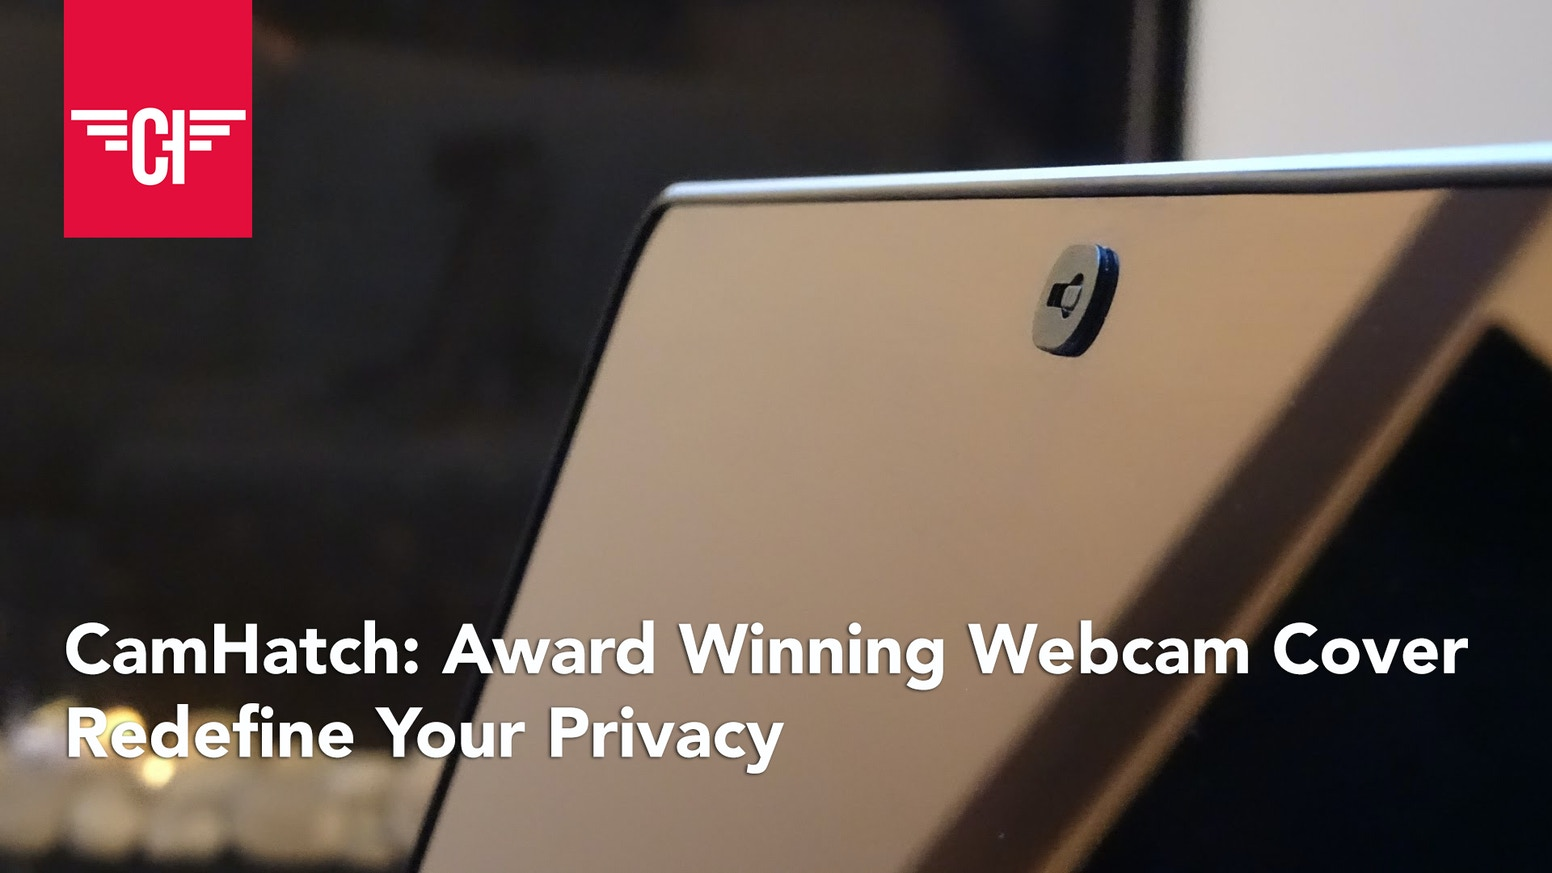 World's most durable, elegant and reliable webcam cover now available! Practical, ultra-thin and affordable!